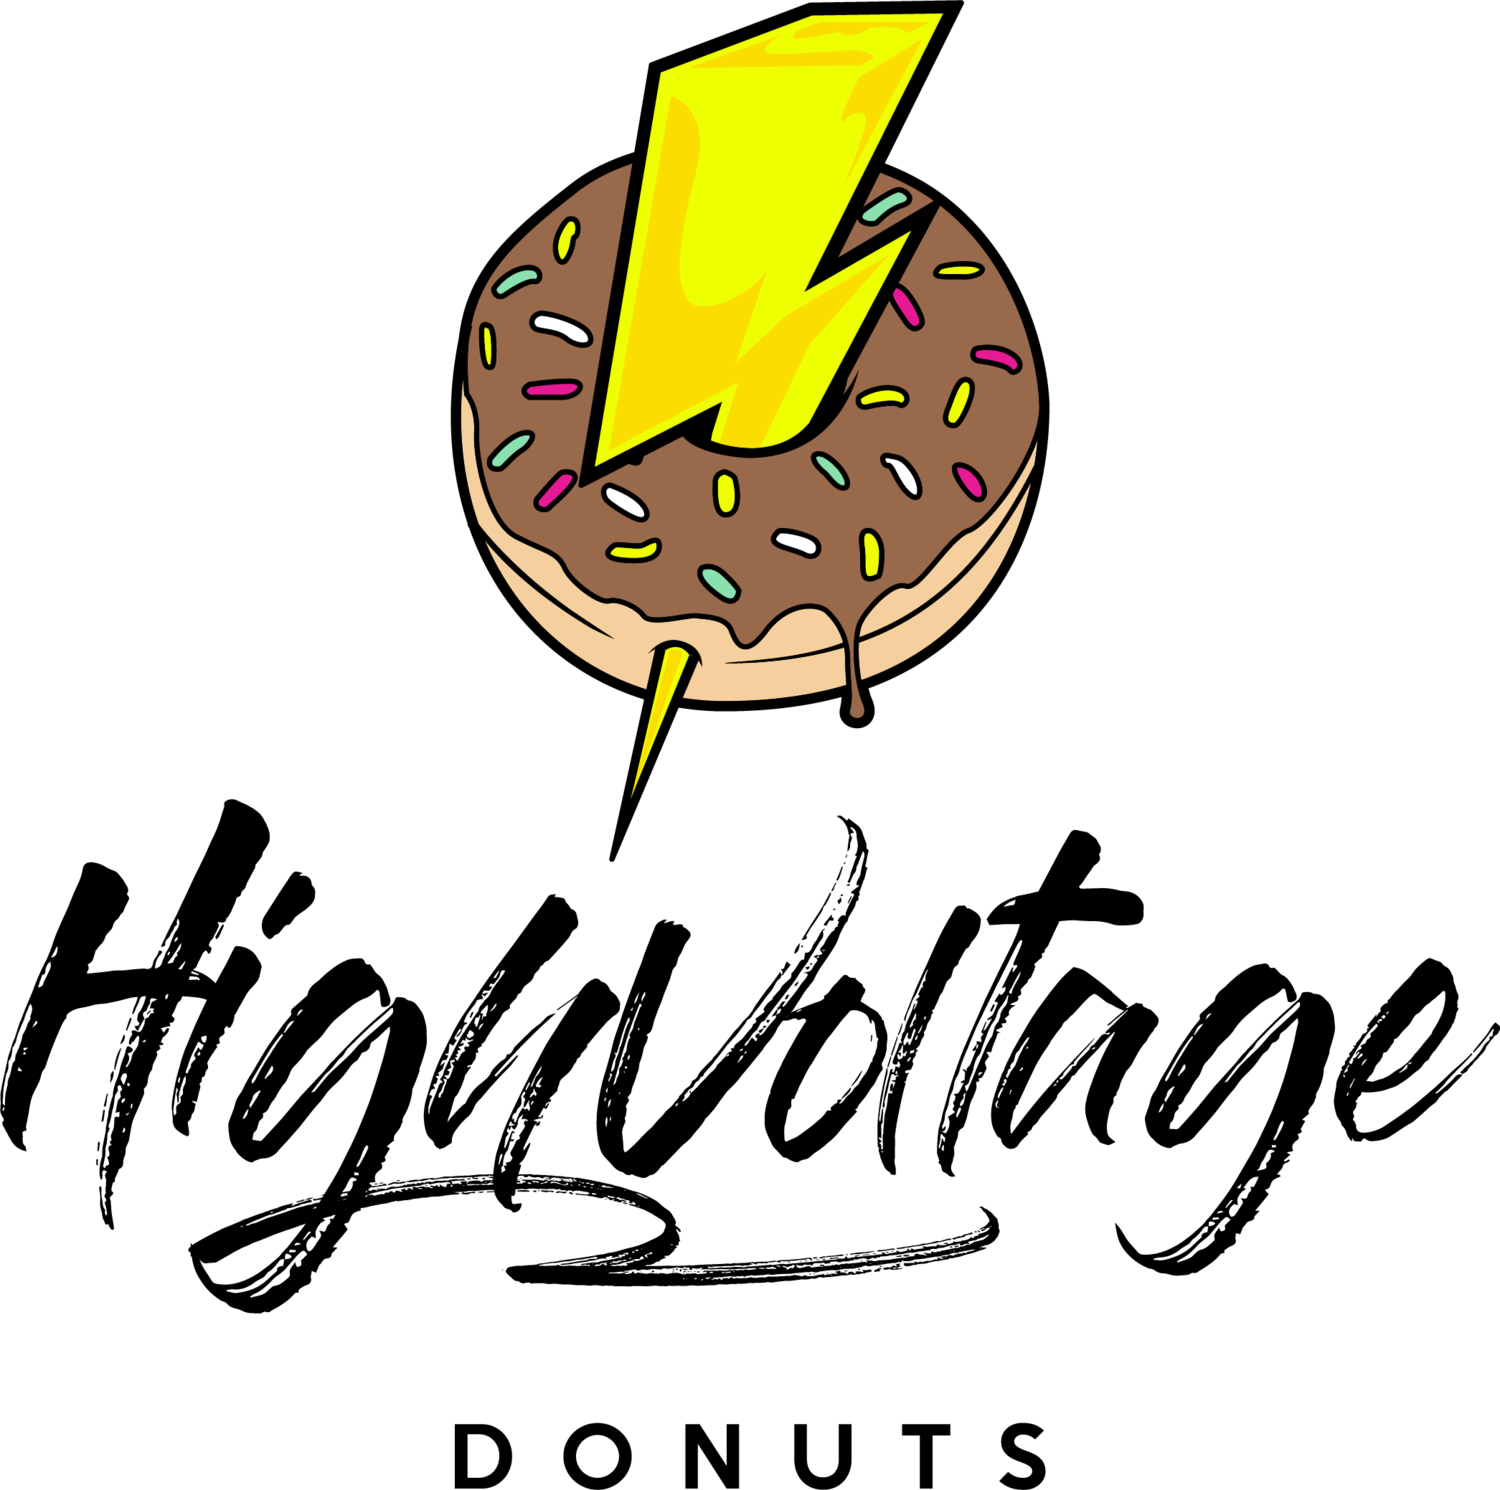 Donut clipart vanilla donut. High voltage donuts